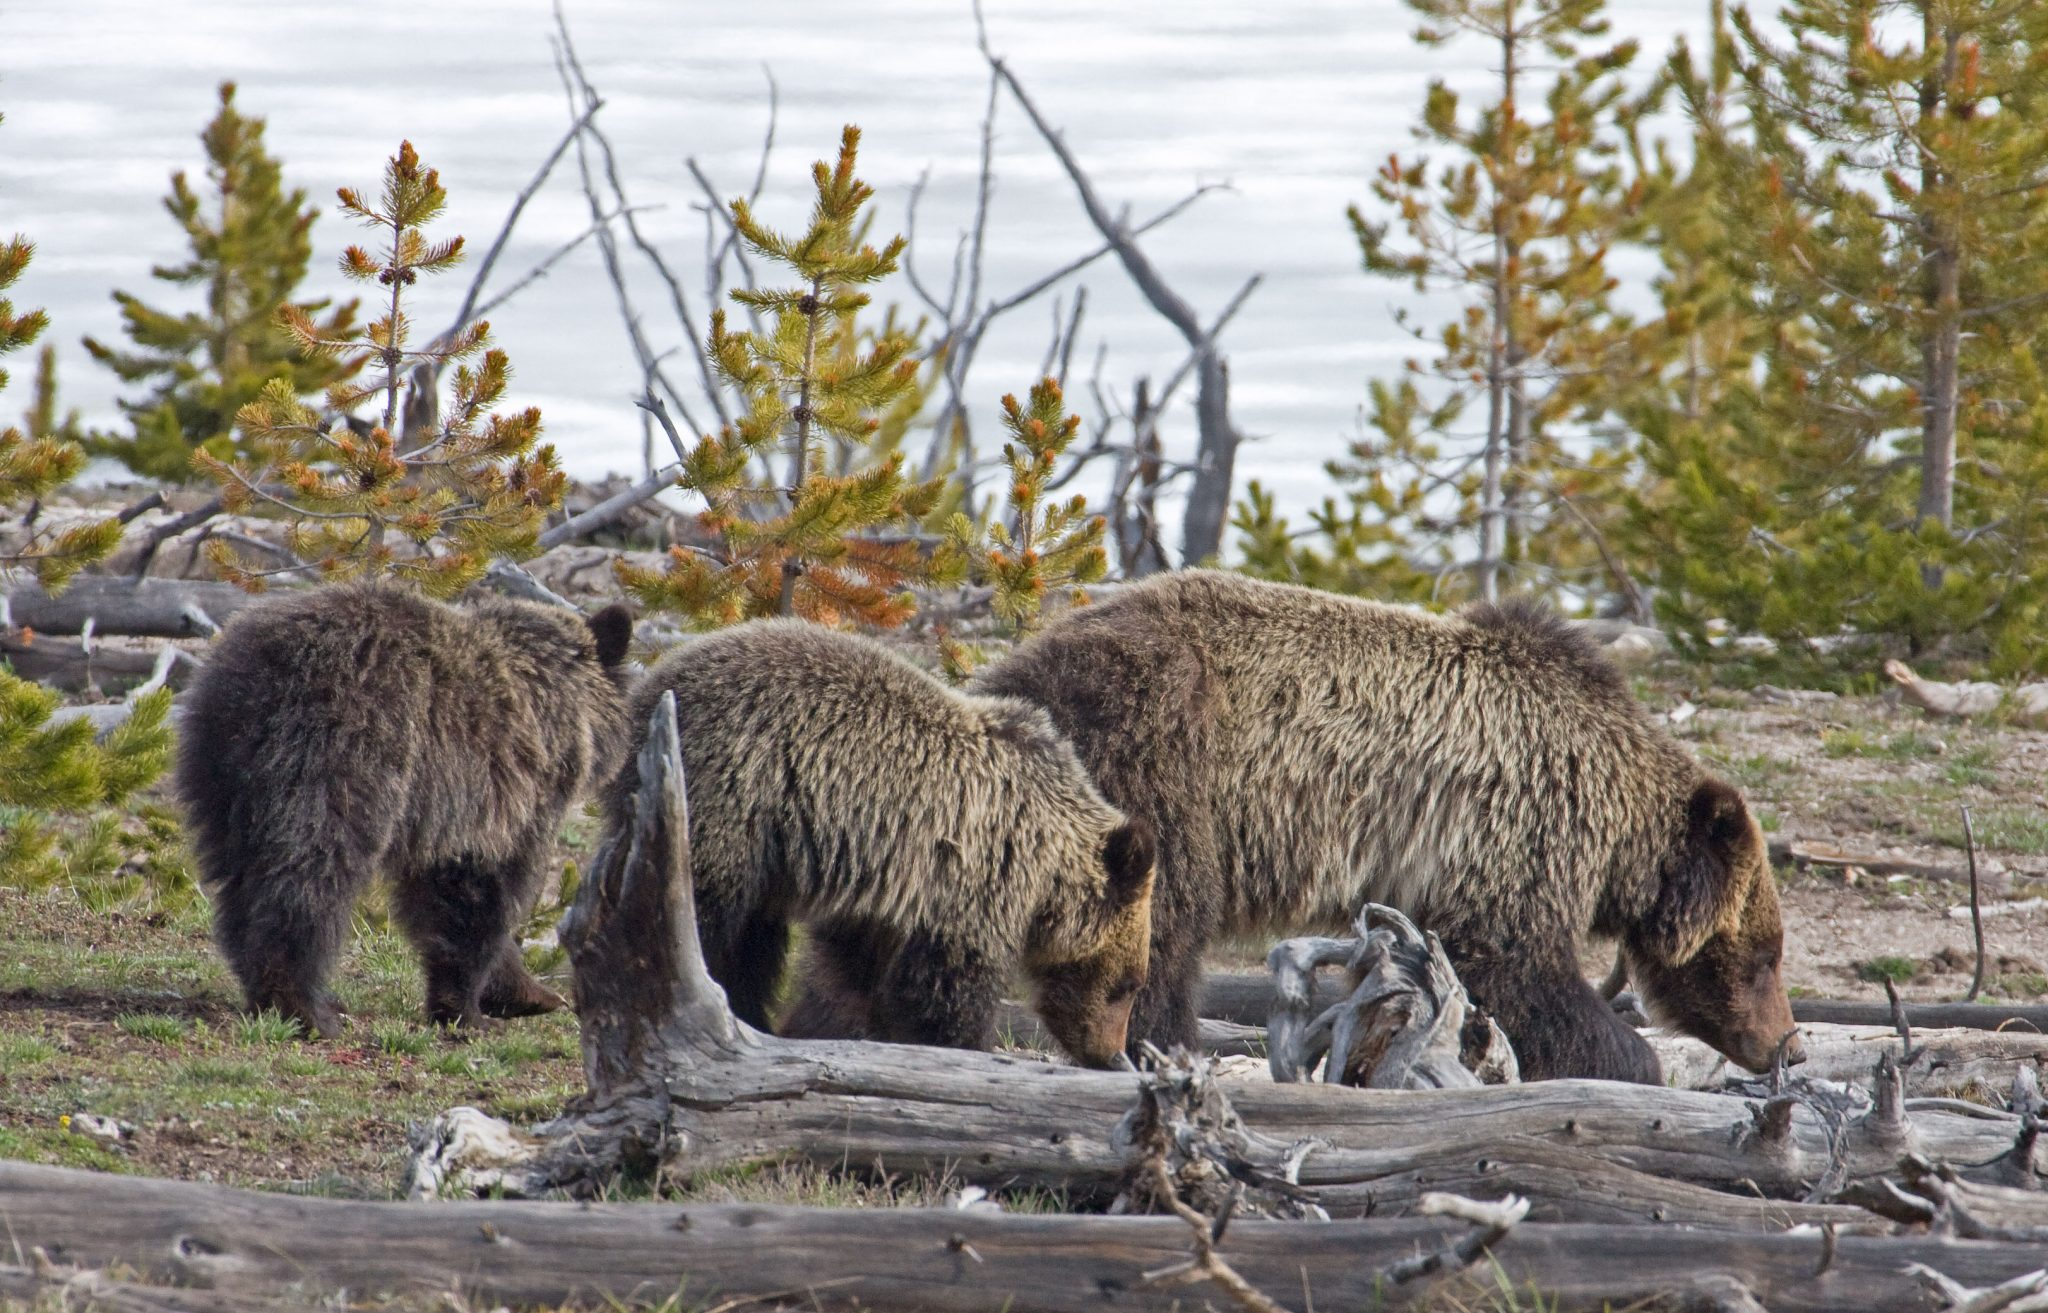 Grizzly bear family in the Greater Yellowstone Ecosystem.